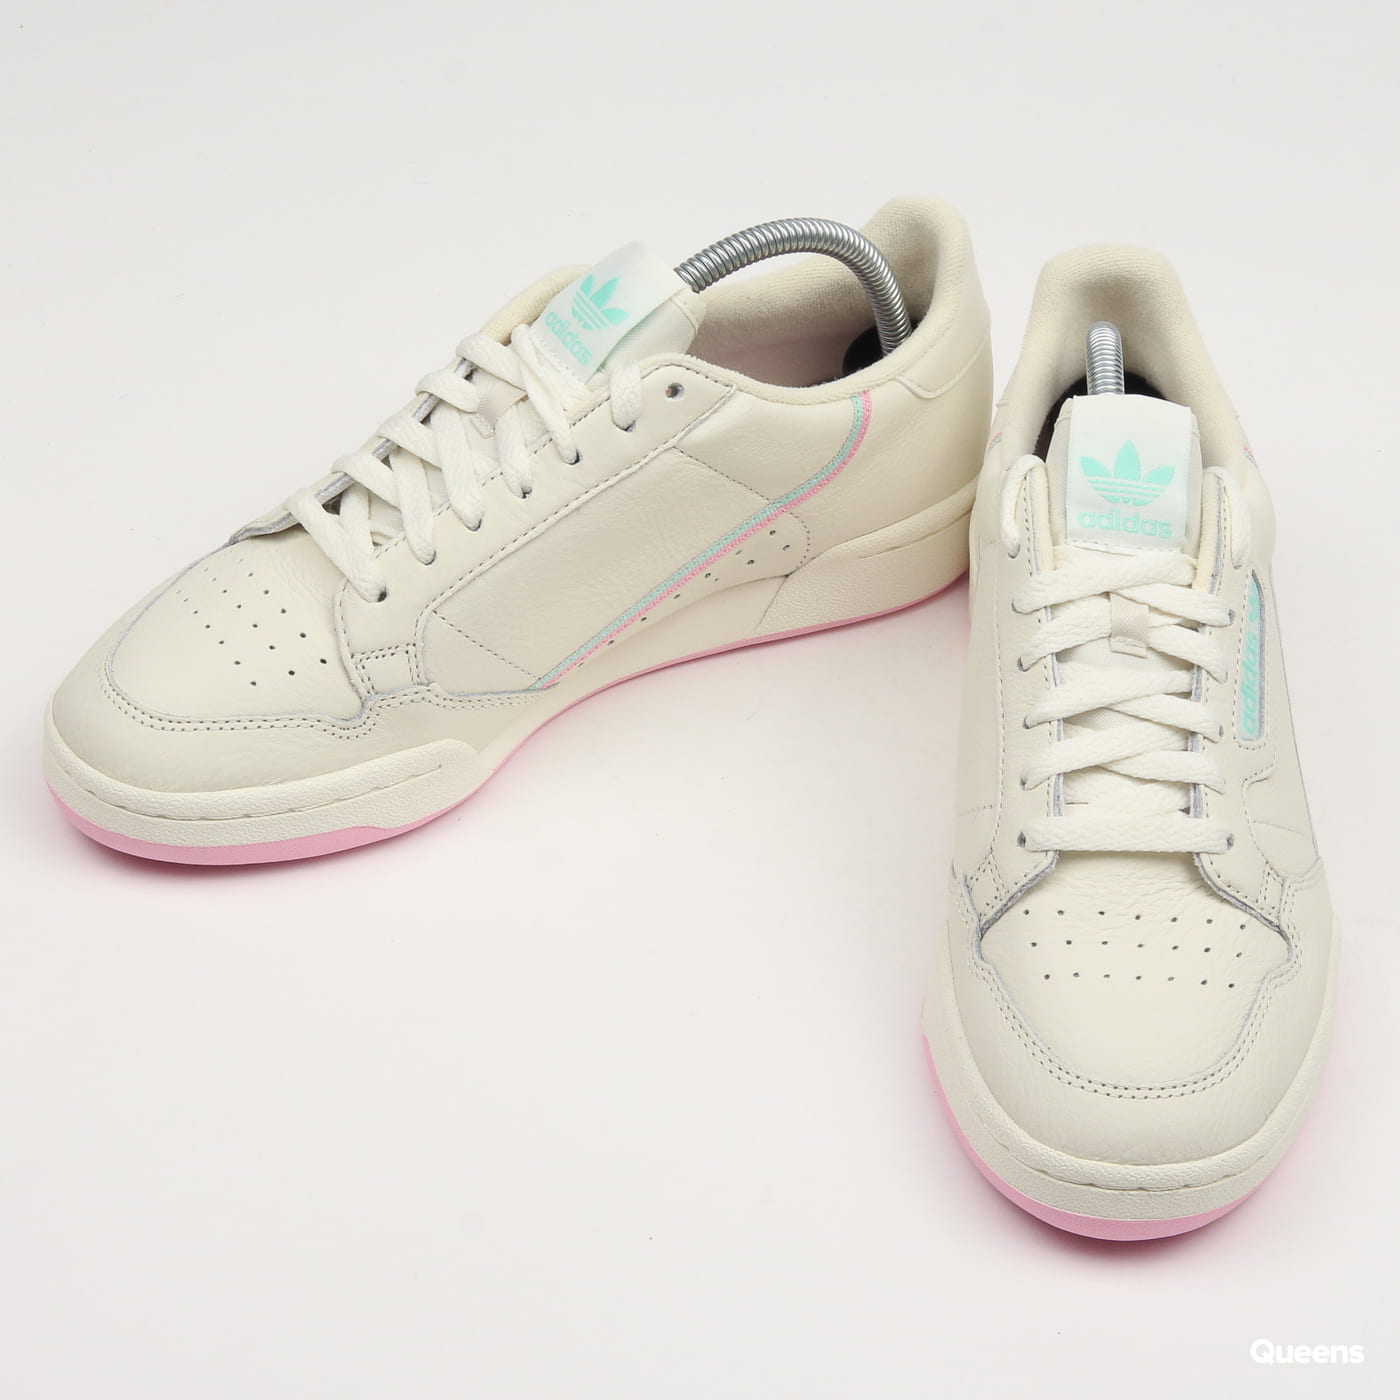 quite nice 8a3d1 bea7a Zoom in Zoom in Zoom in Zoom in Zoom in Zoom in. adidas Originals Continental  80 ...